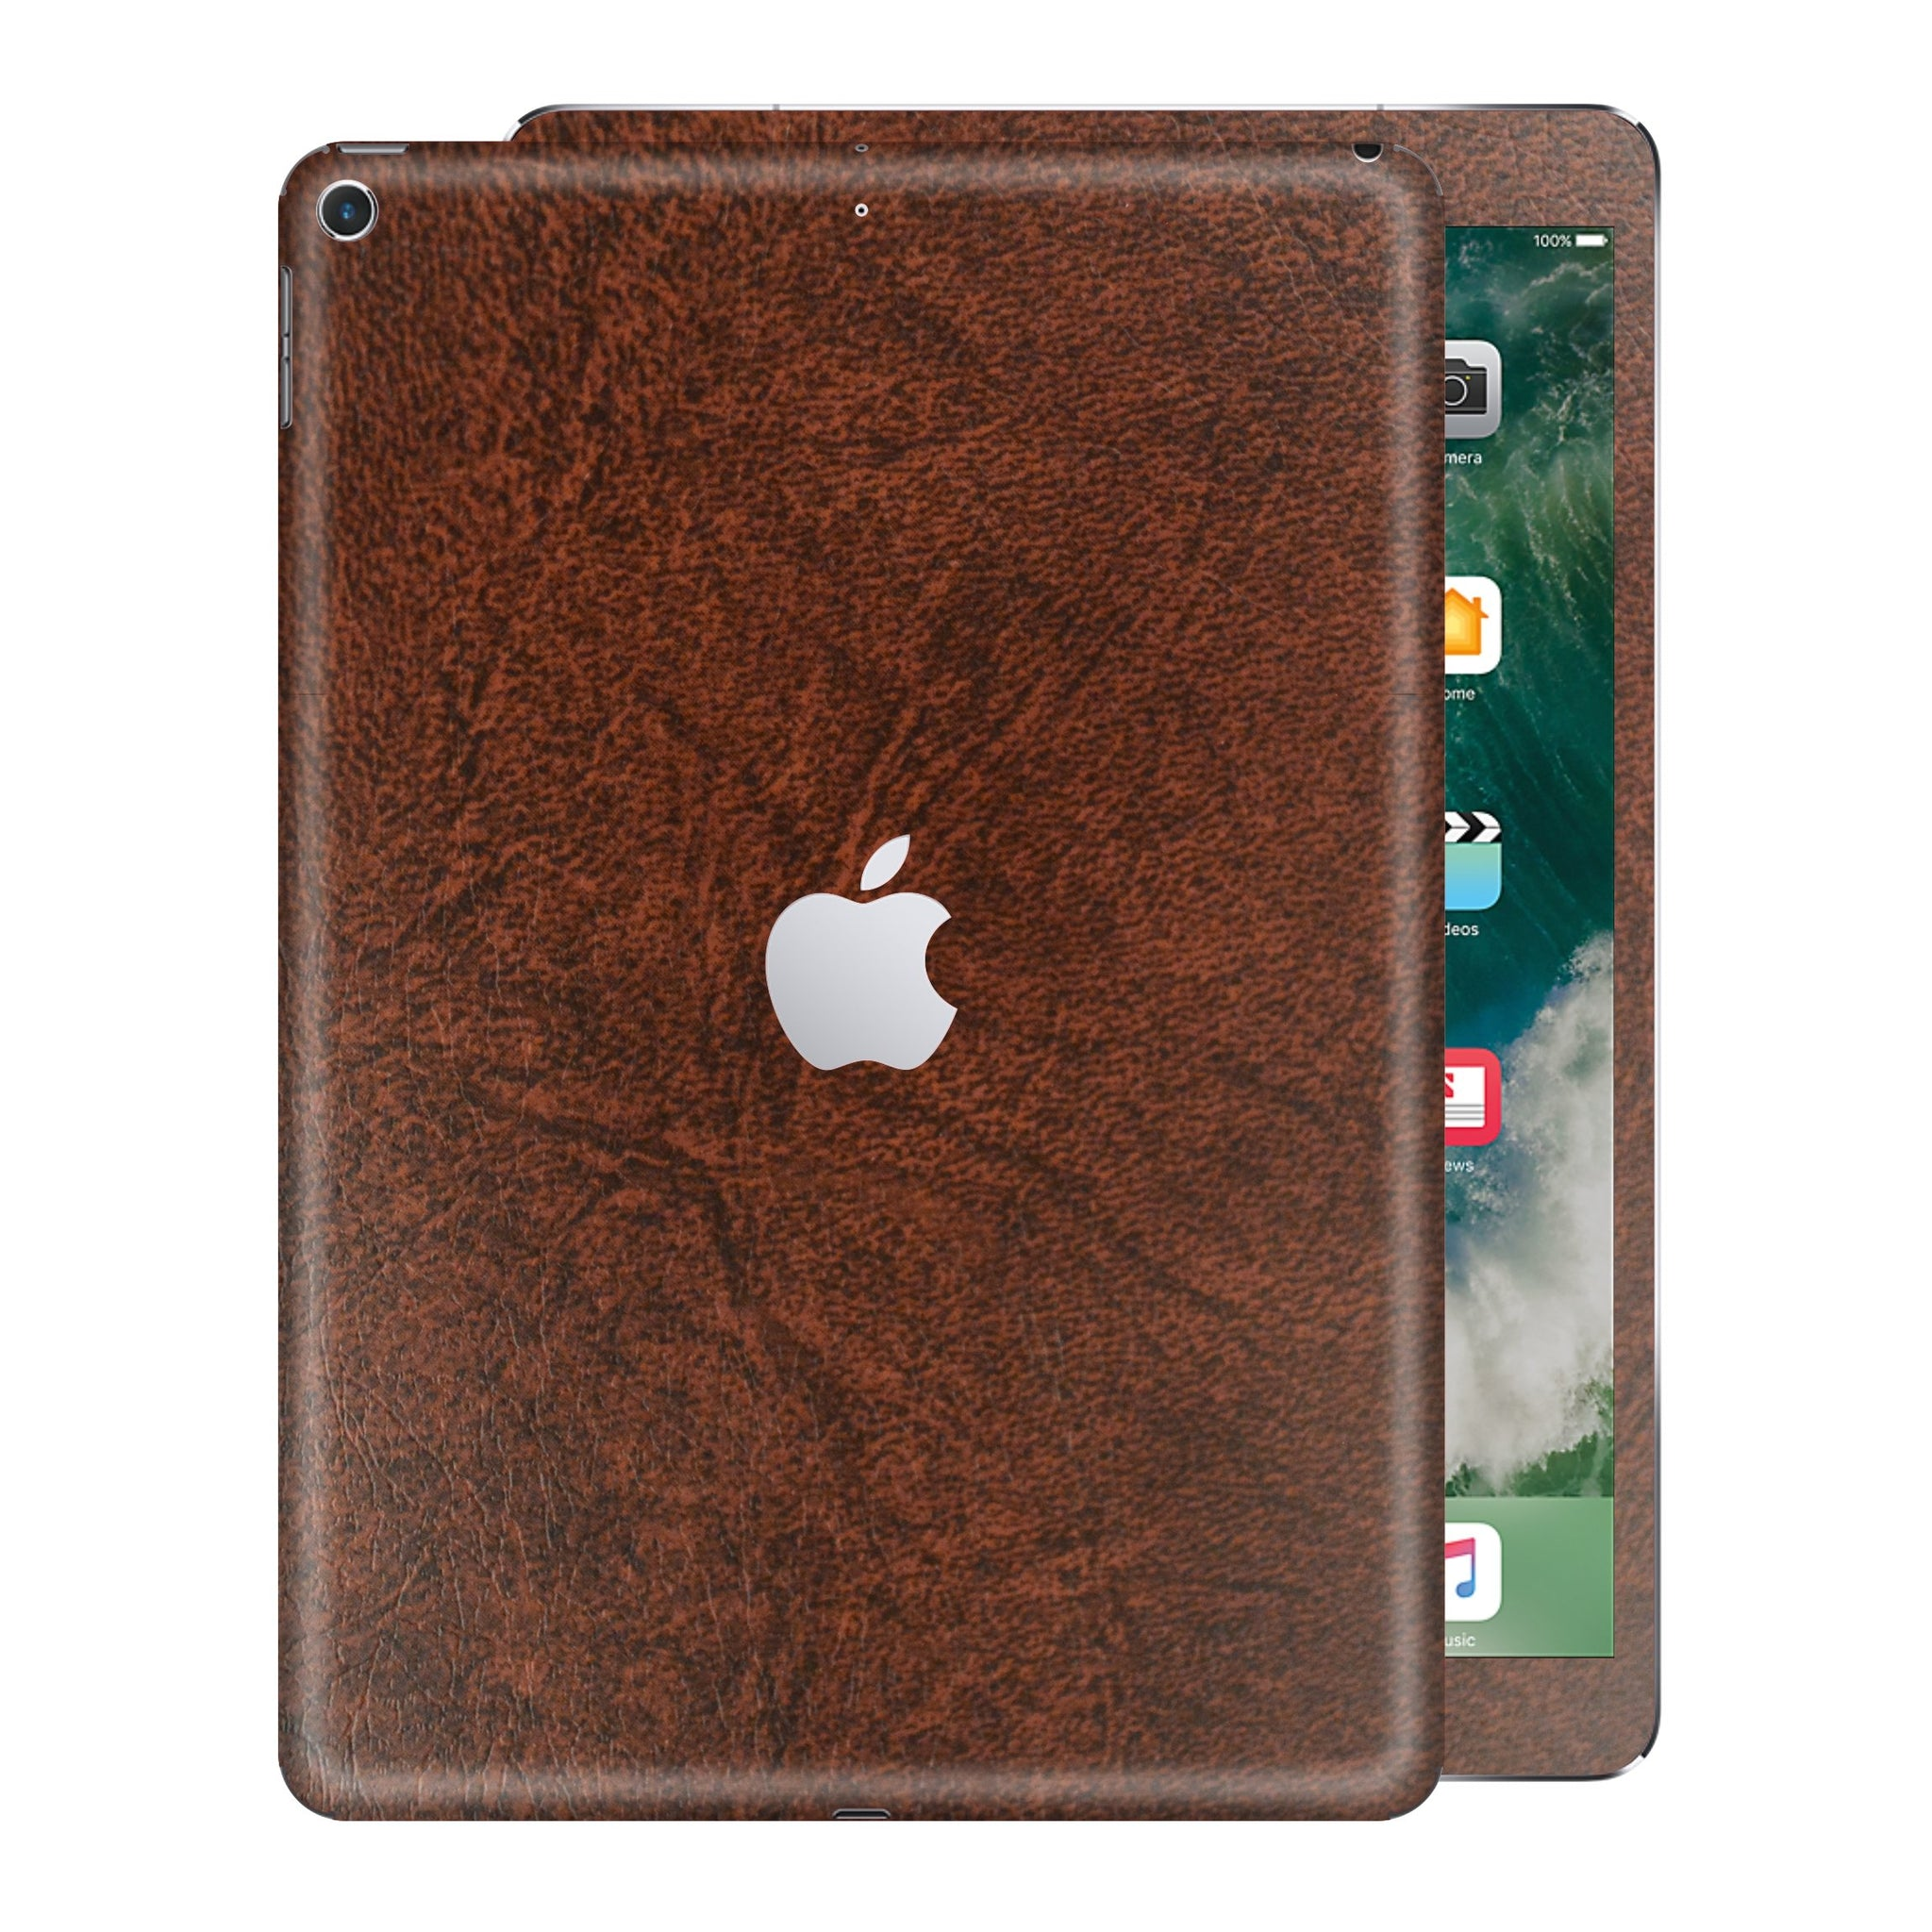 iPad 9.7 inch 2017 Luxuria Brown Leather Skin Wrap Sticker Decal Cover Protector by EasySkinz